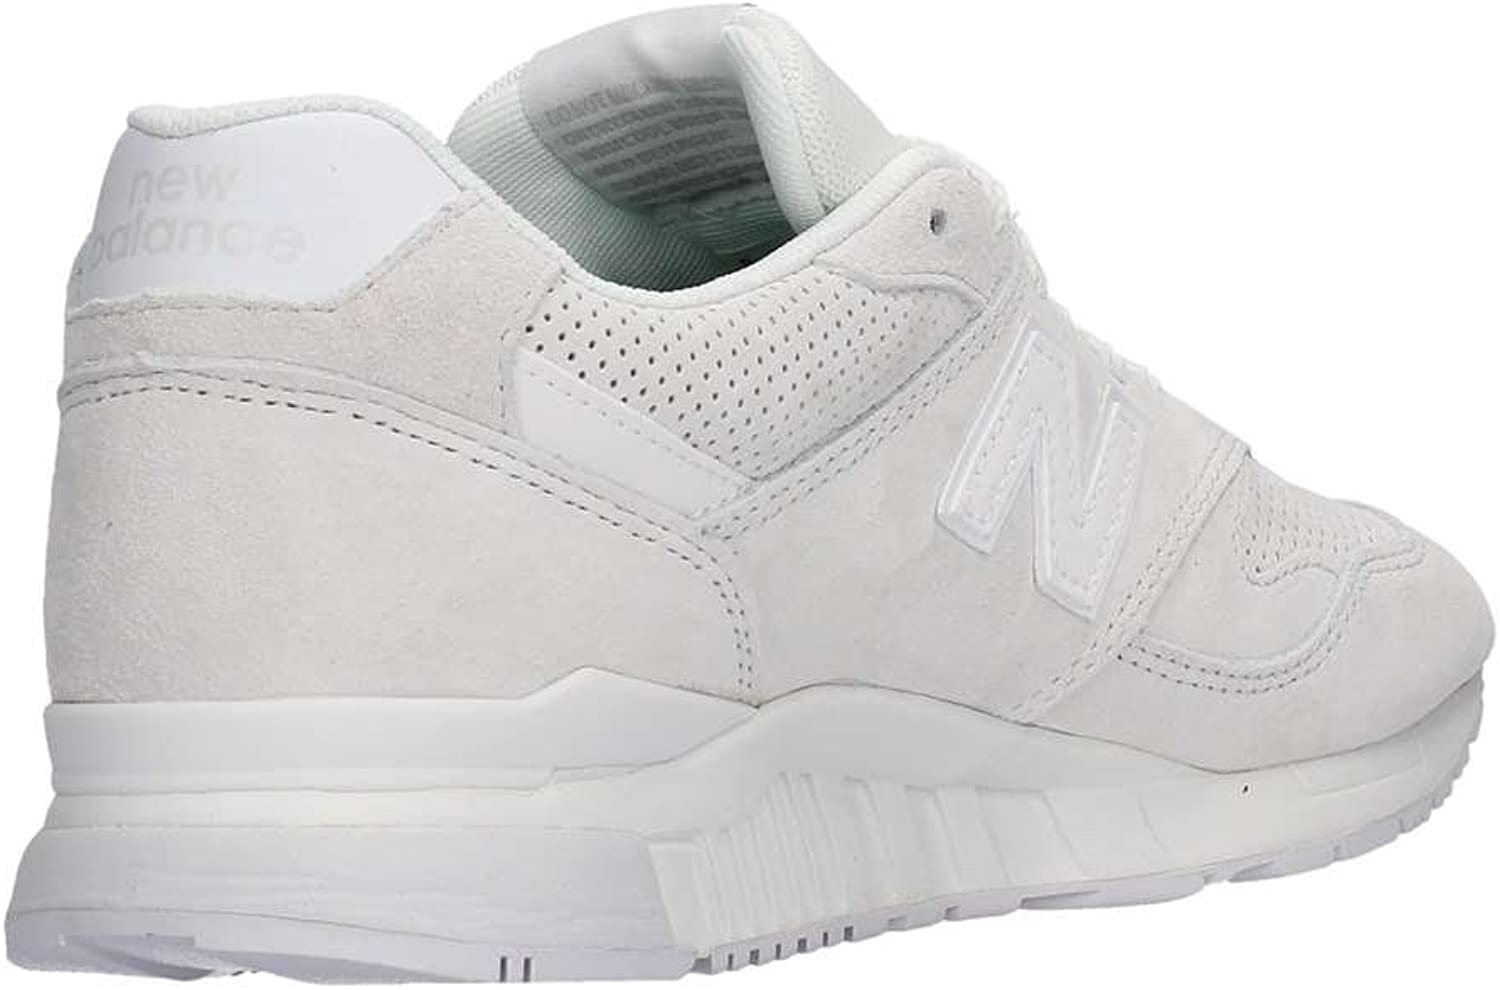 New Balance Ml840-ad-d, Sneakers Basses Mixte Adulte, Gris ...